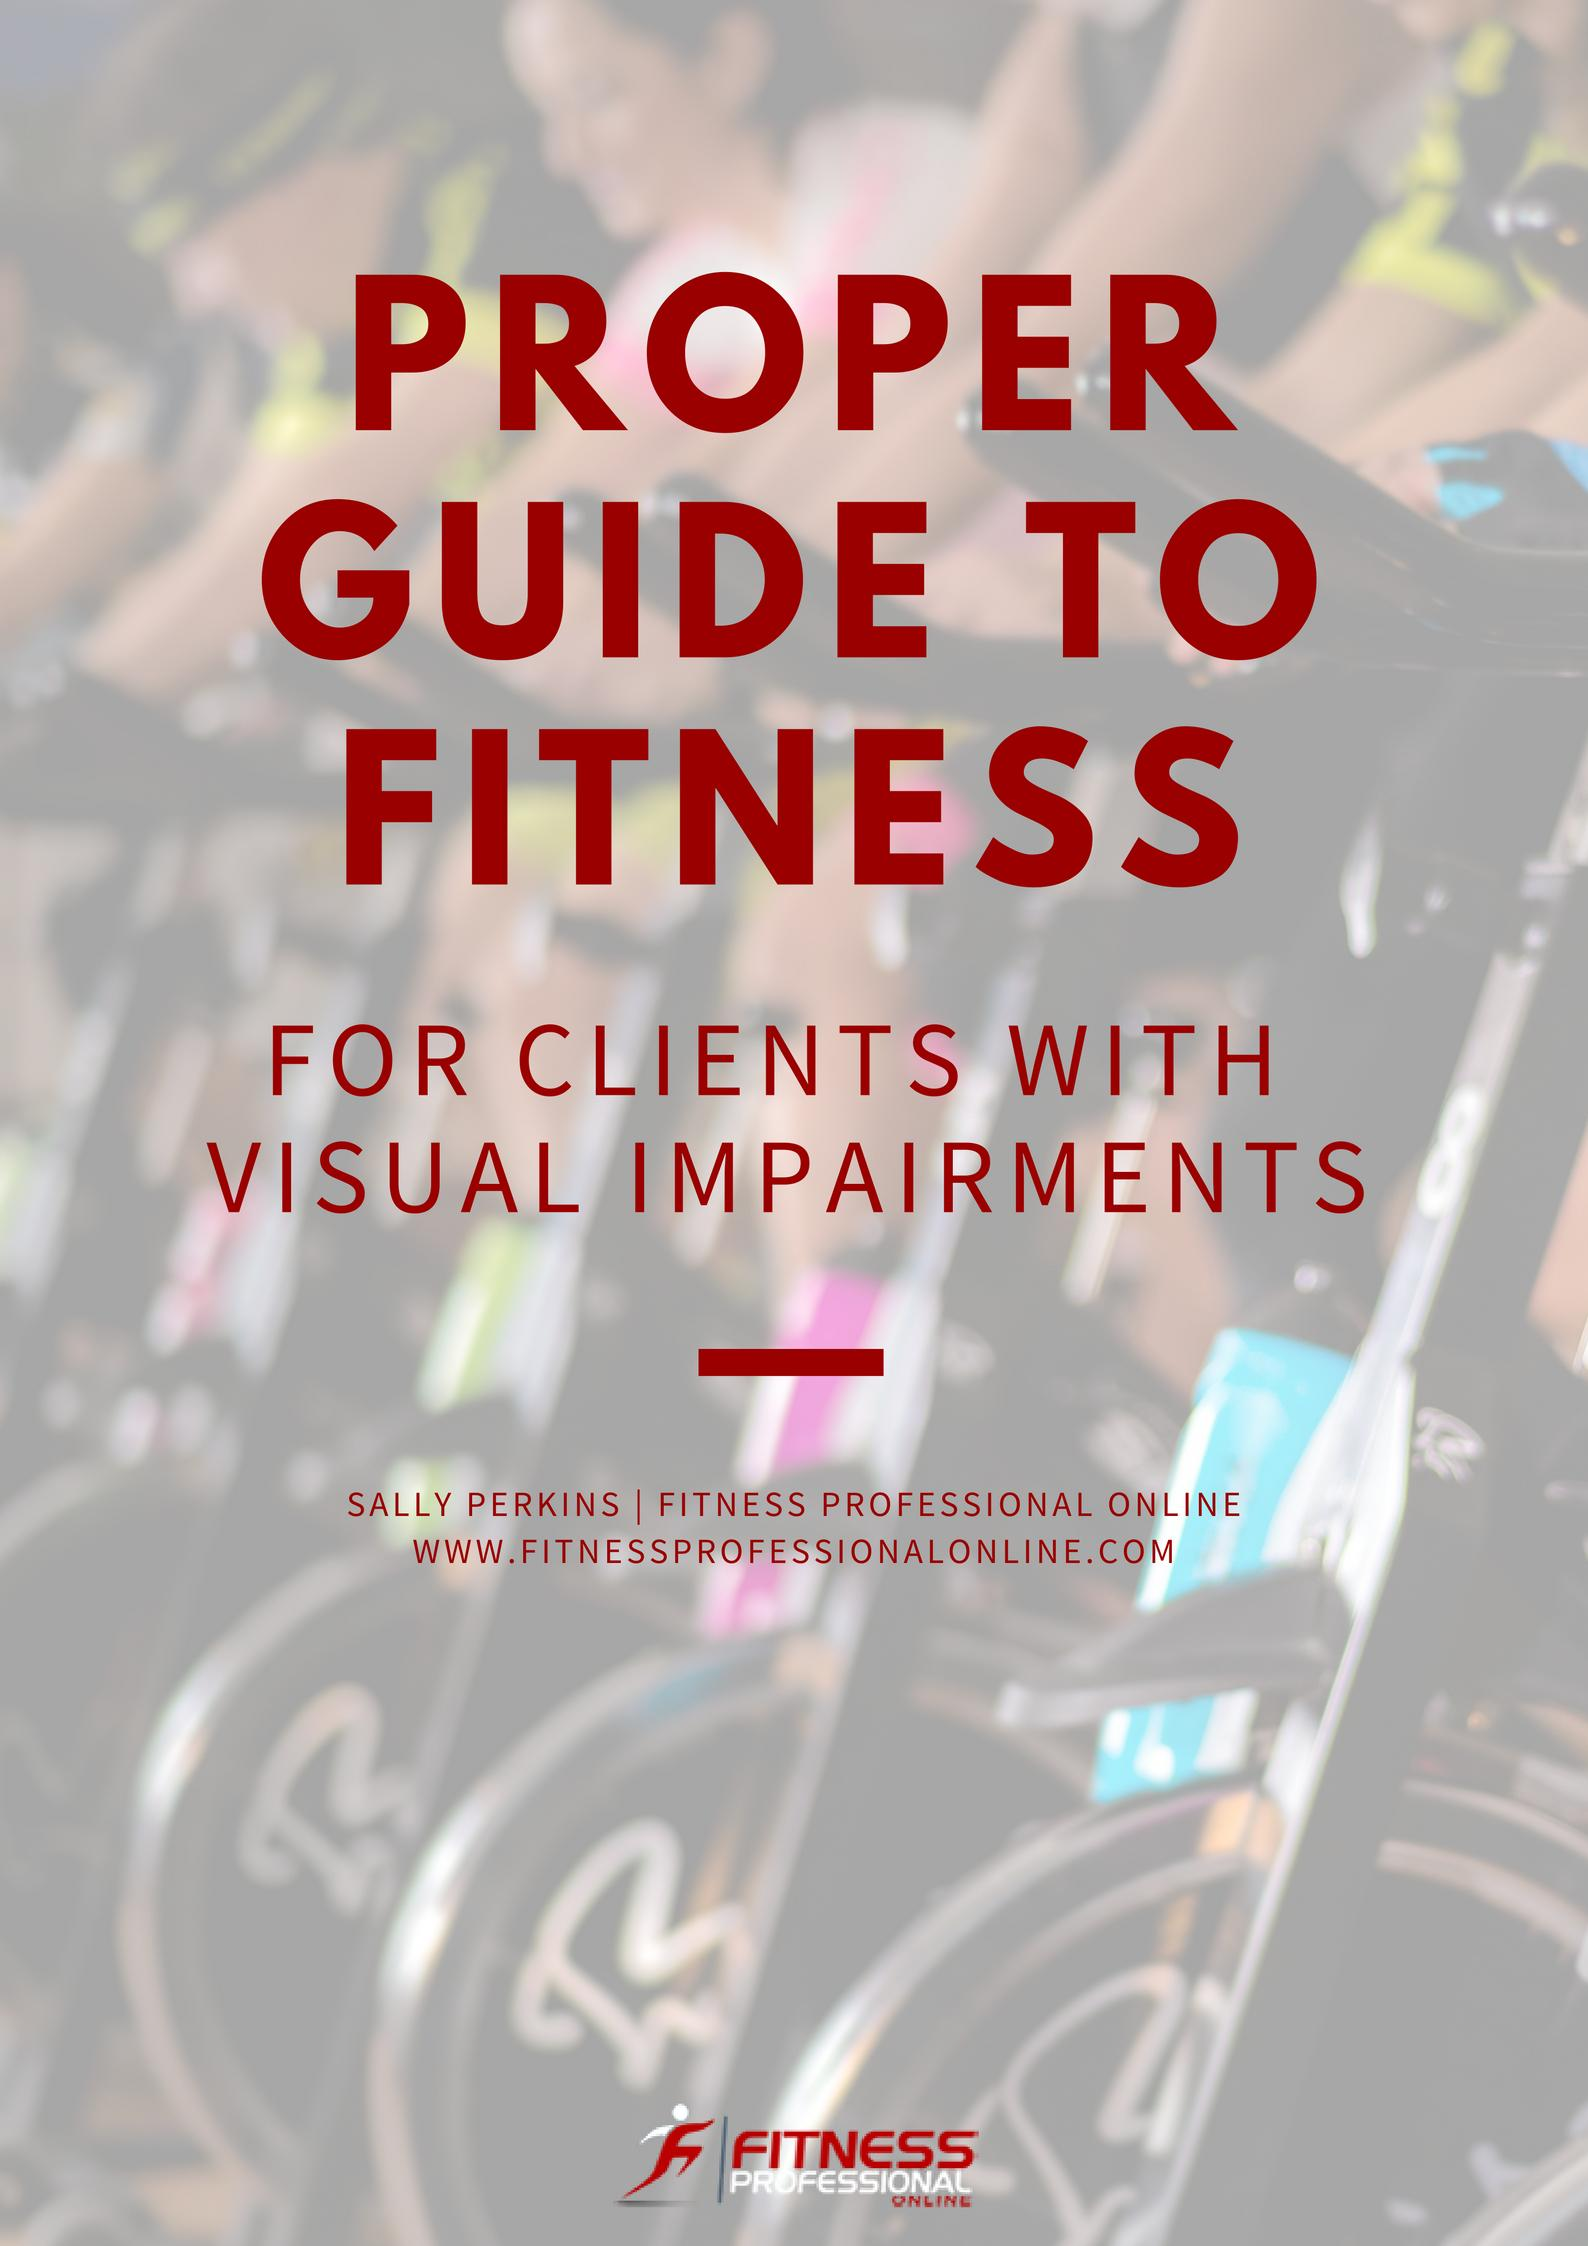 Here are several techniques physical trainers can follow for proper fitness and use of equipment for clients with visual impairments.